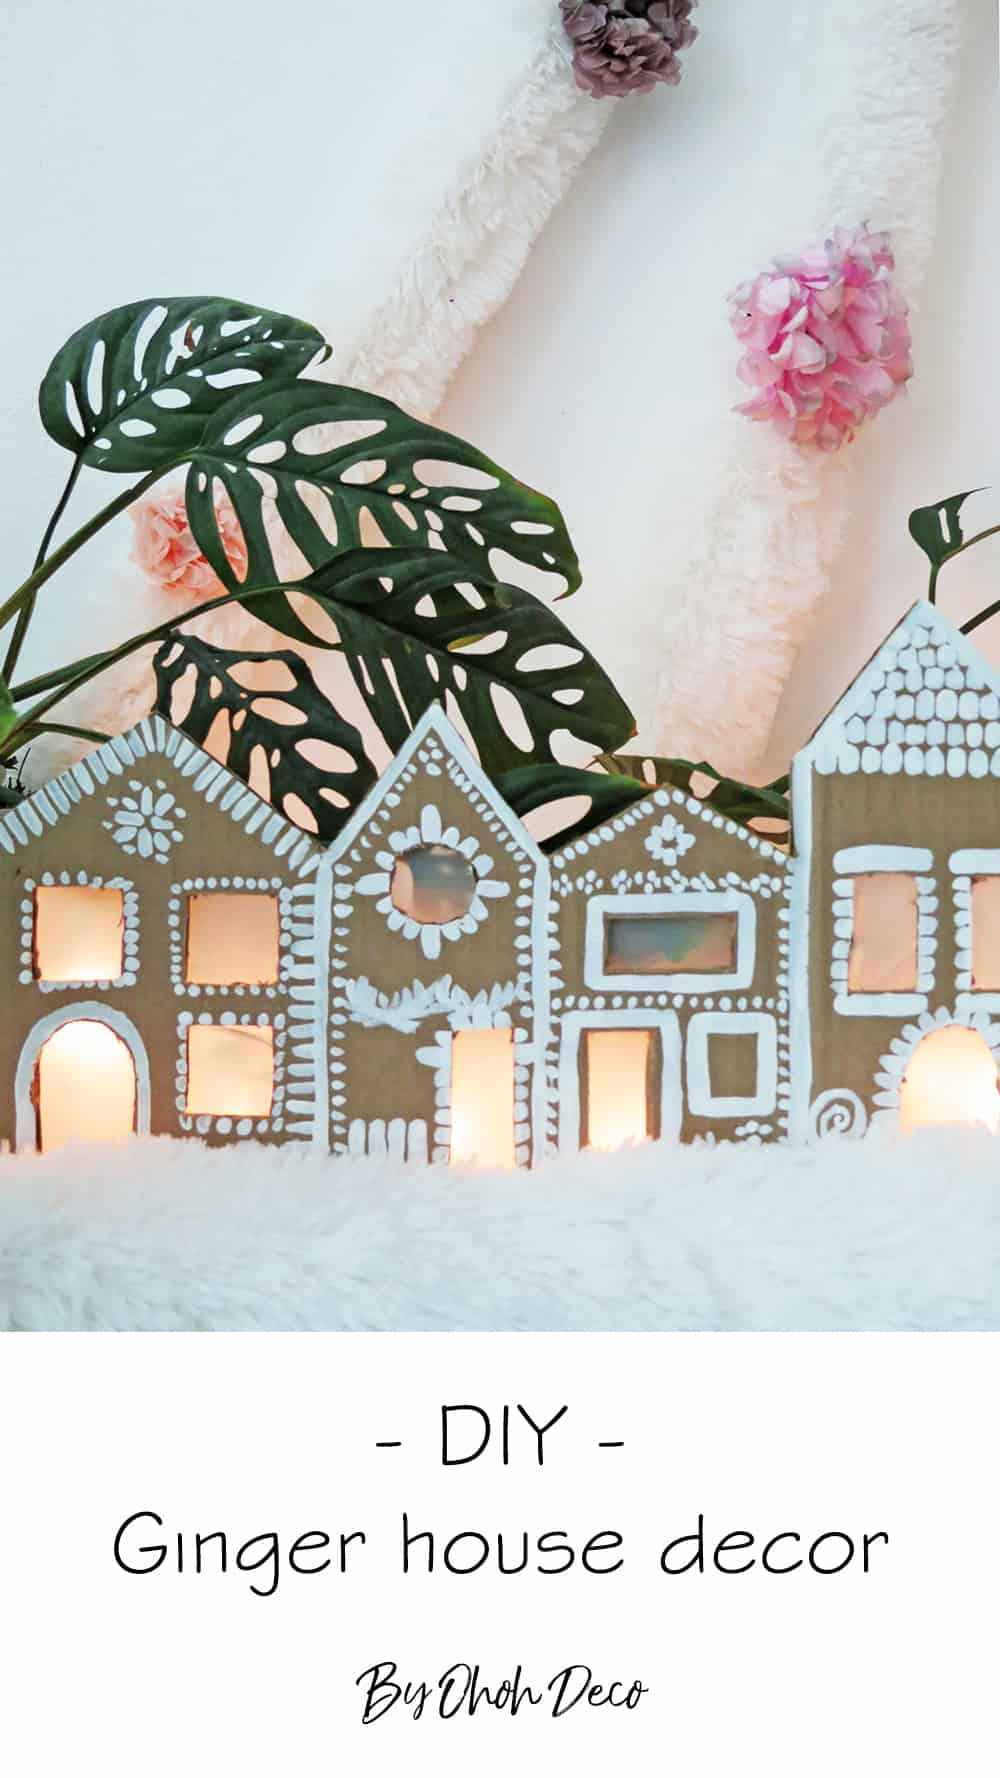 How to make a Christmas ginger house decor with cardboard